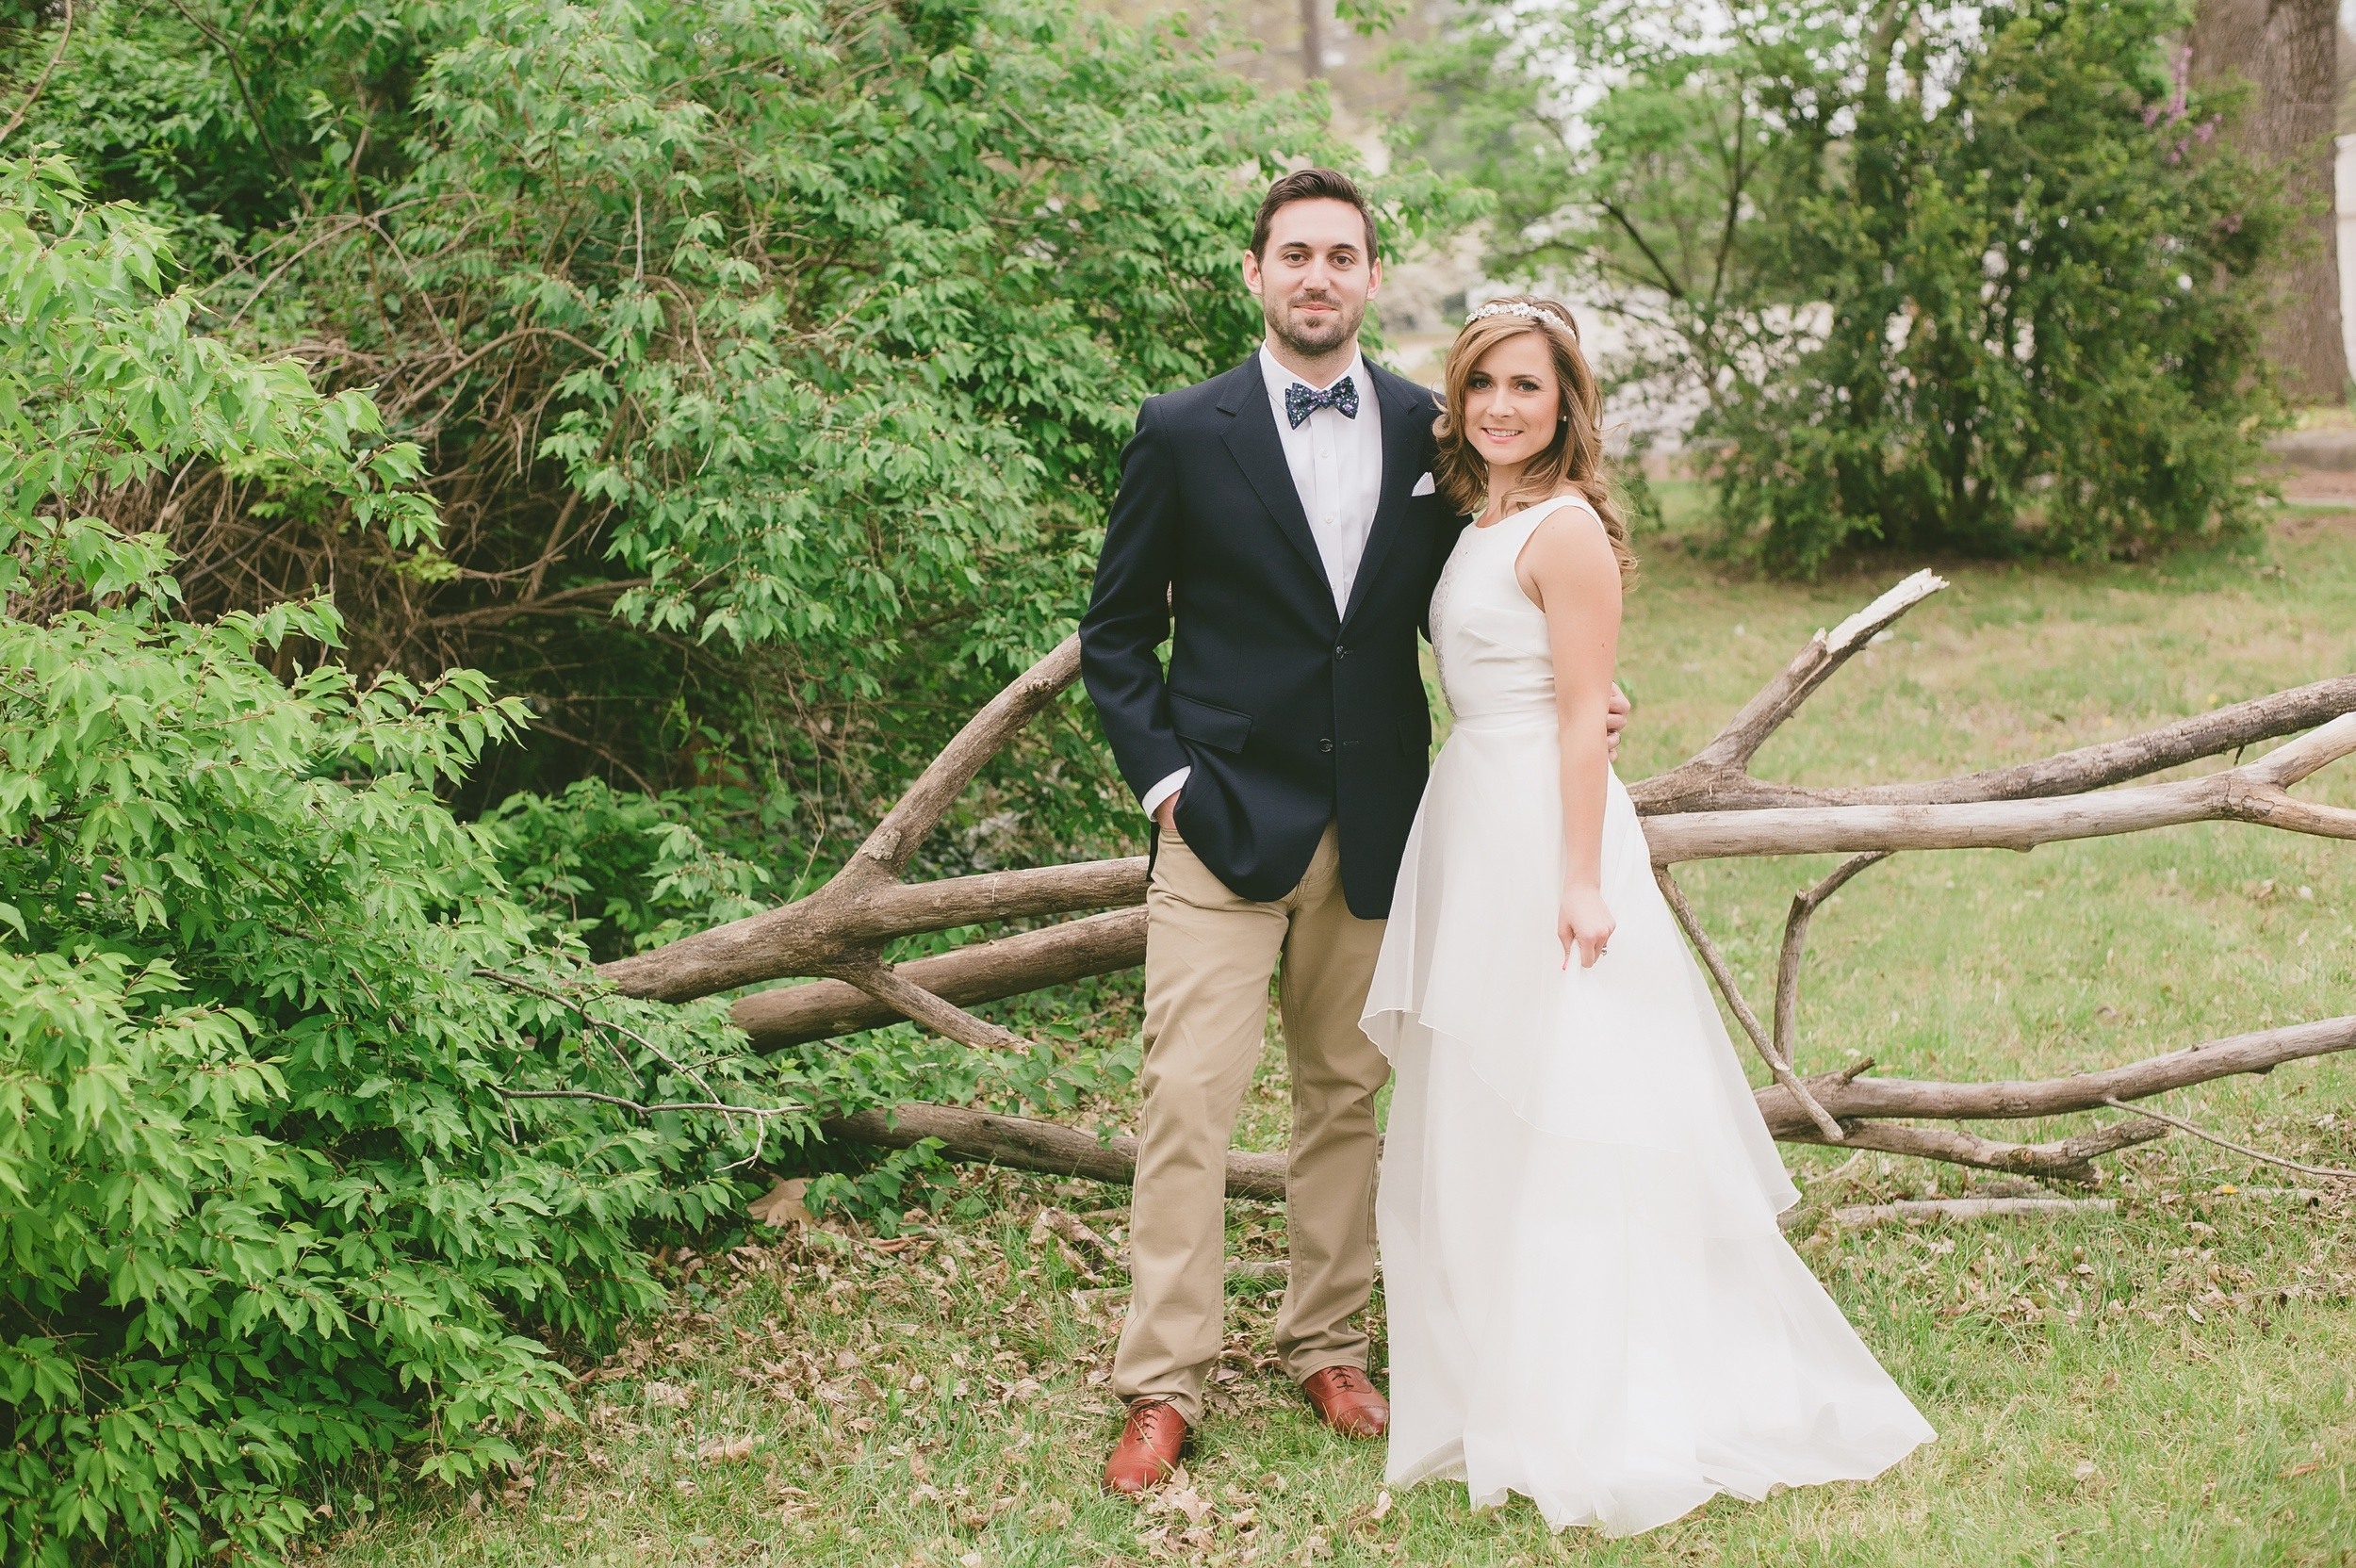 David and Kelsey | David in bowtie by Fox and Brie and Kelsey in Whitney Deal | Photo: Lady and Mister Photographie